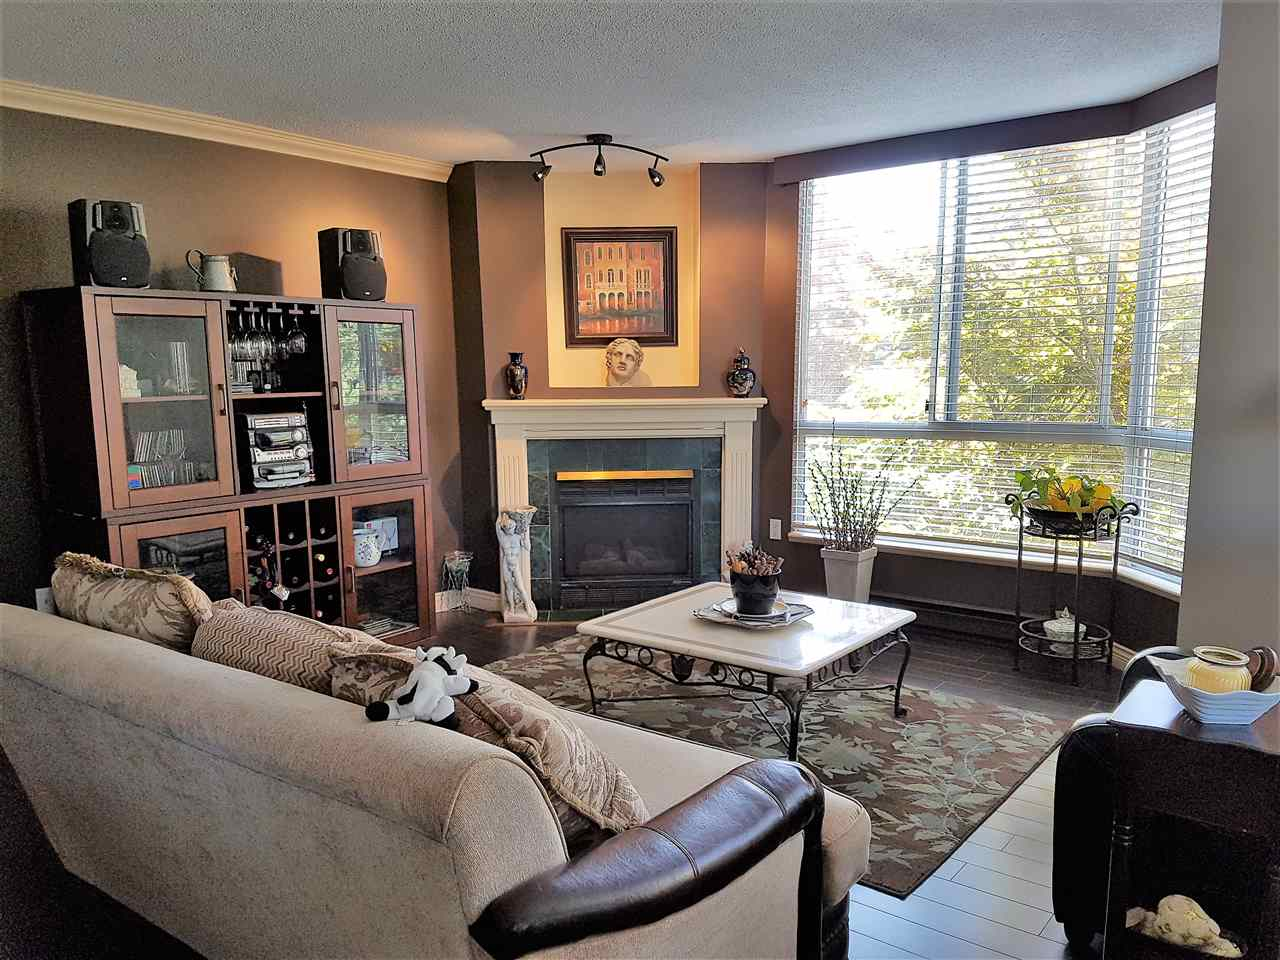 Buliding: 1245 Quayside Drive, New Westminster, BC